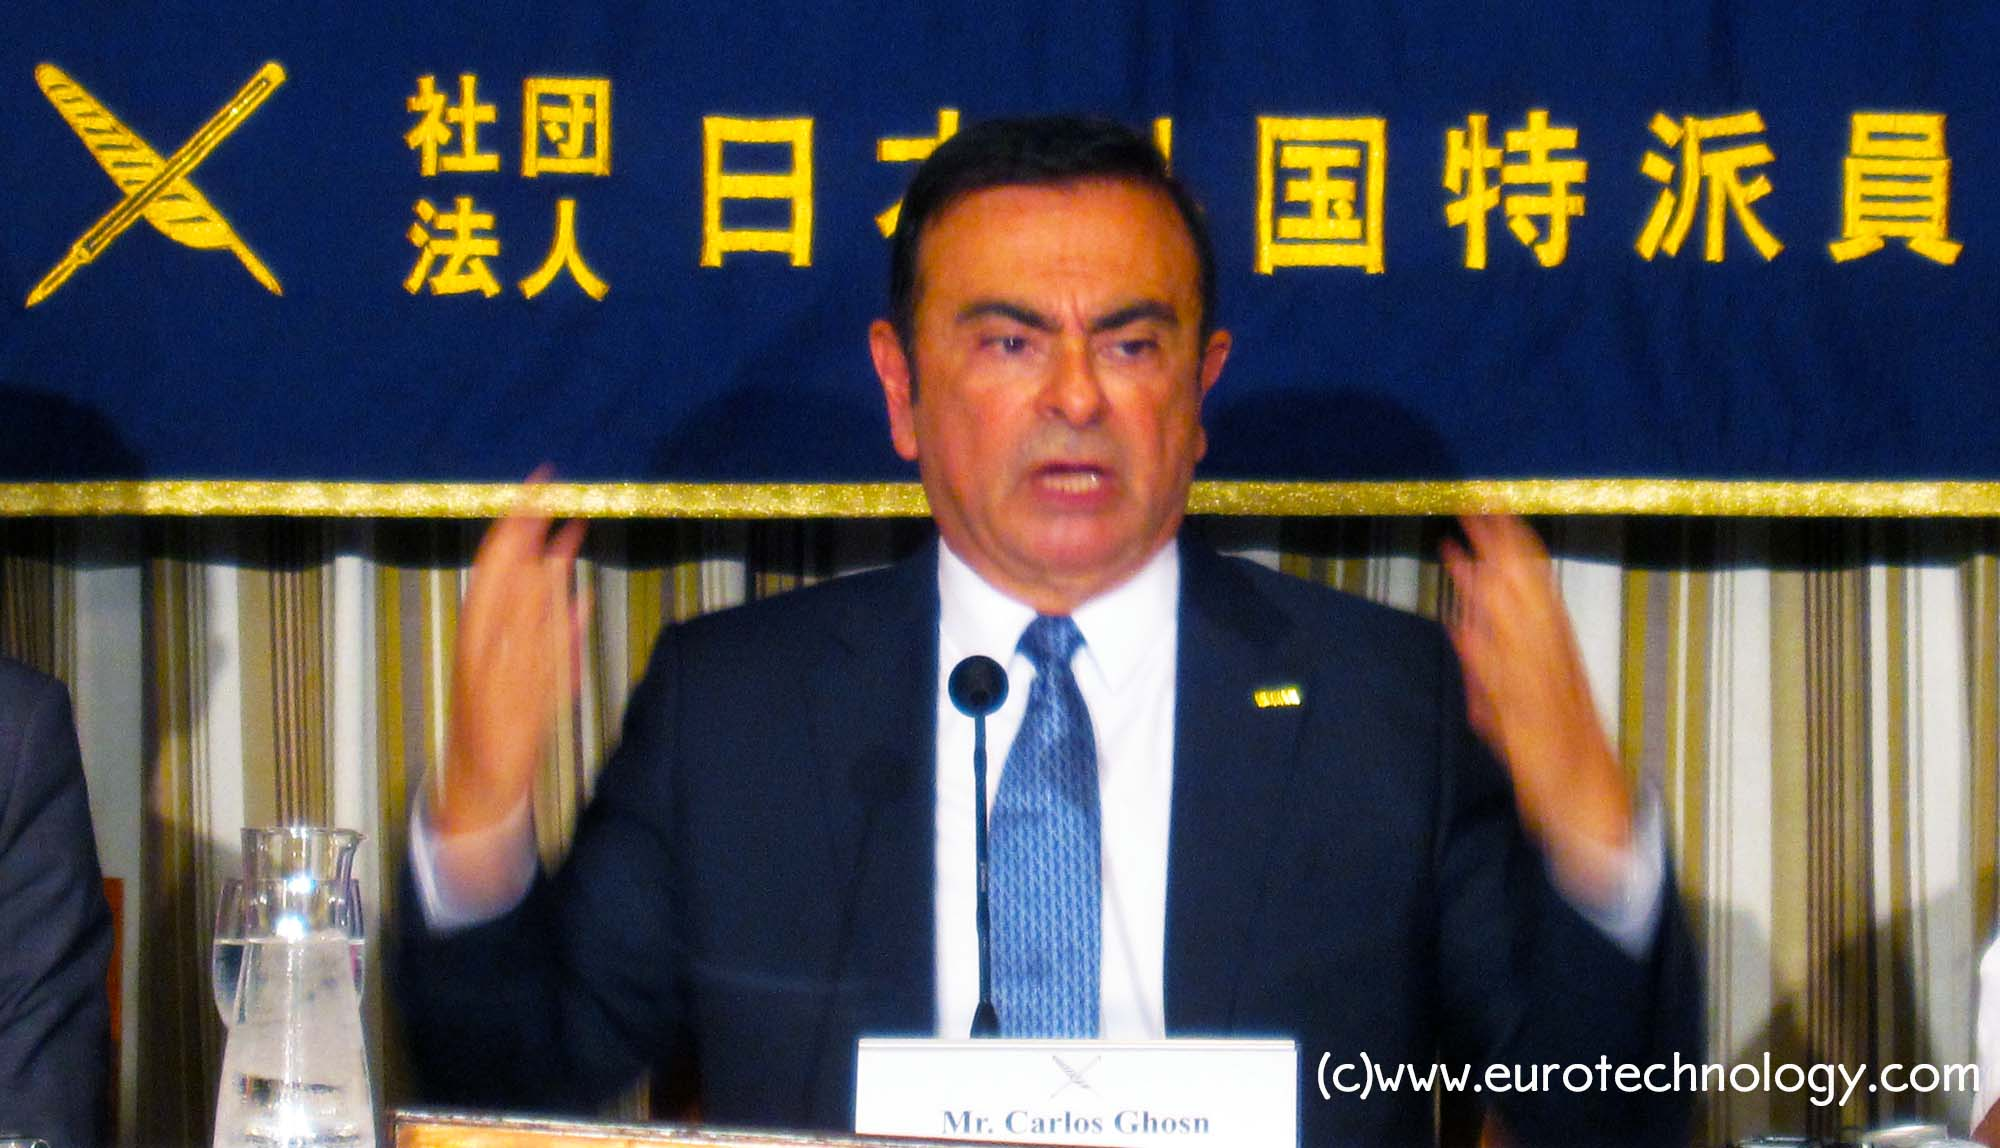 Carlos Ghosn: the four global socio-economic mega-trends reshaping the auto industry